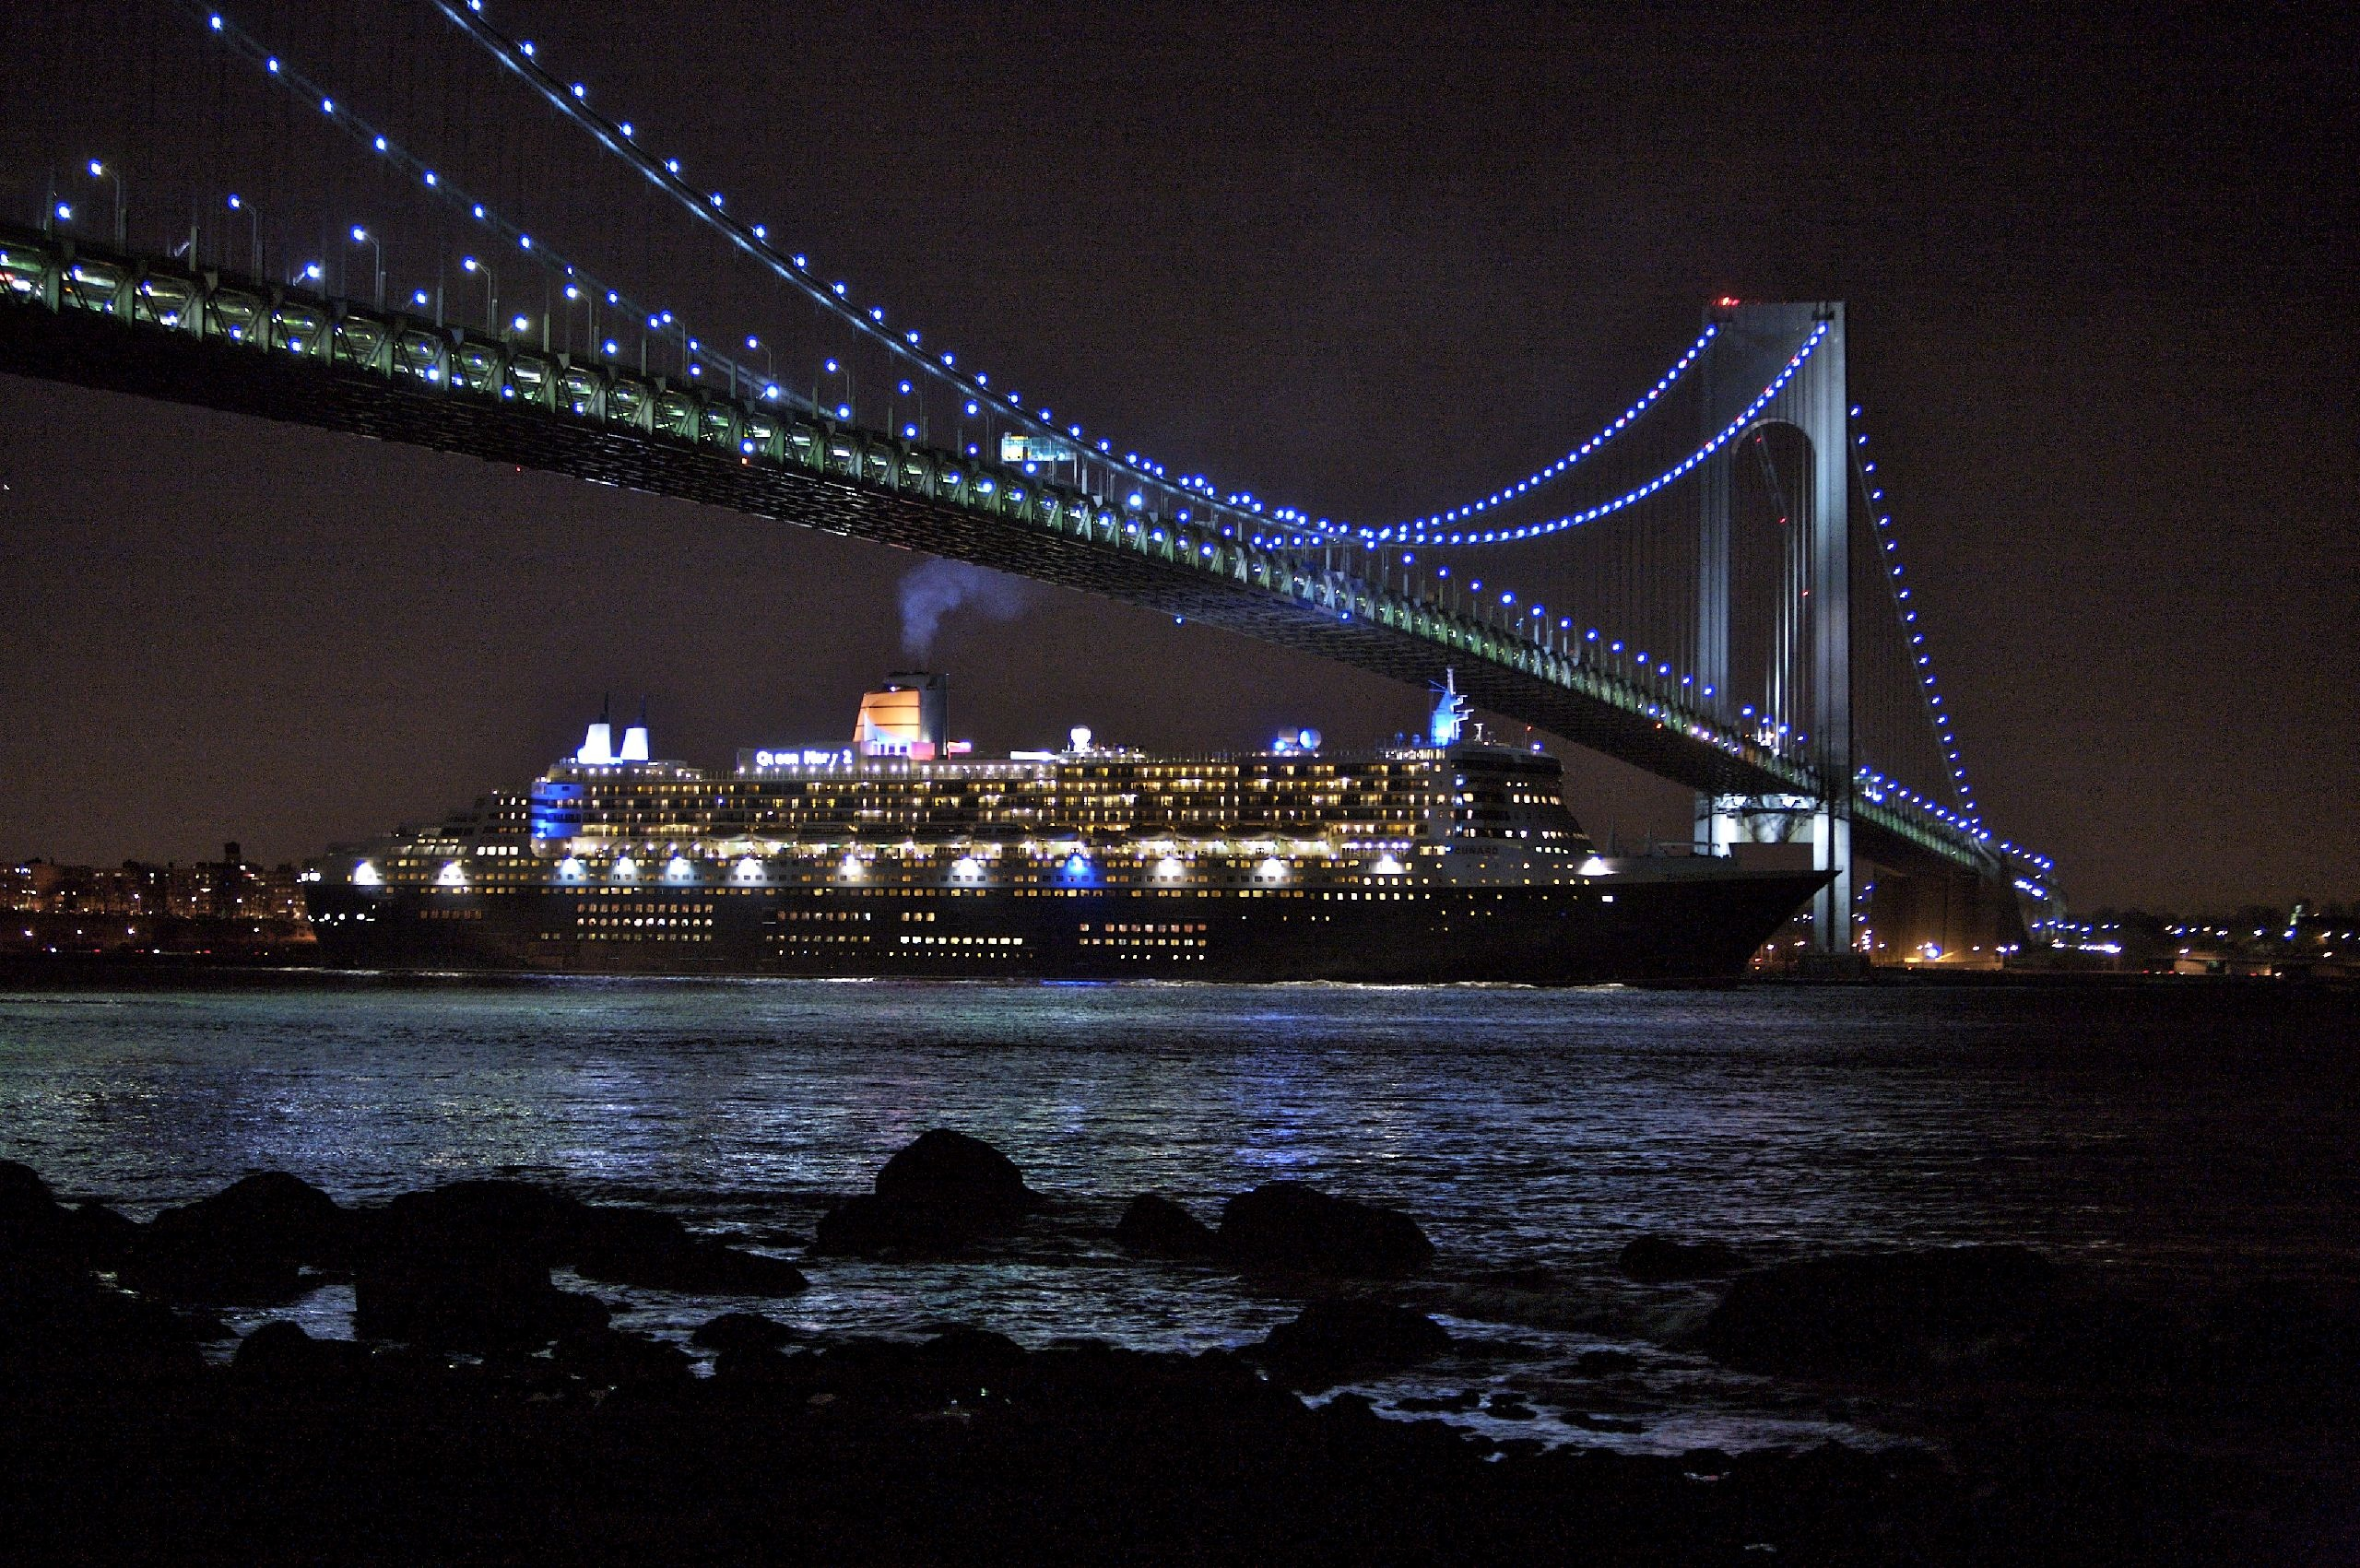 queen mary 2 (barco)